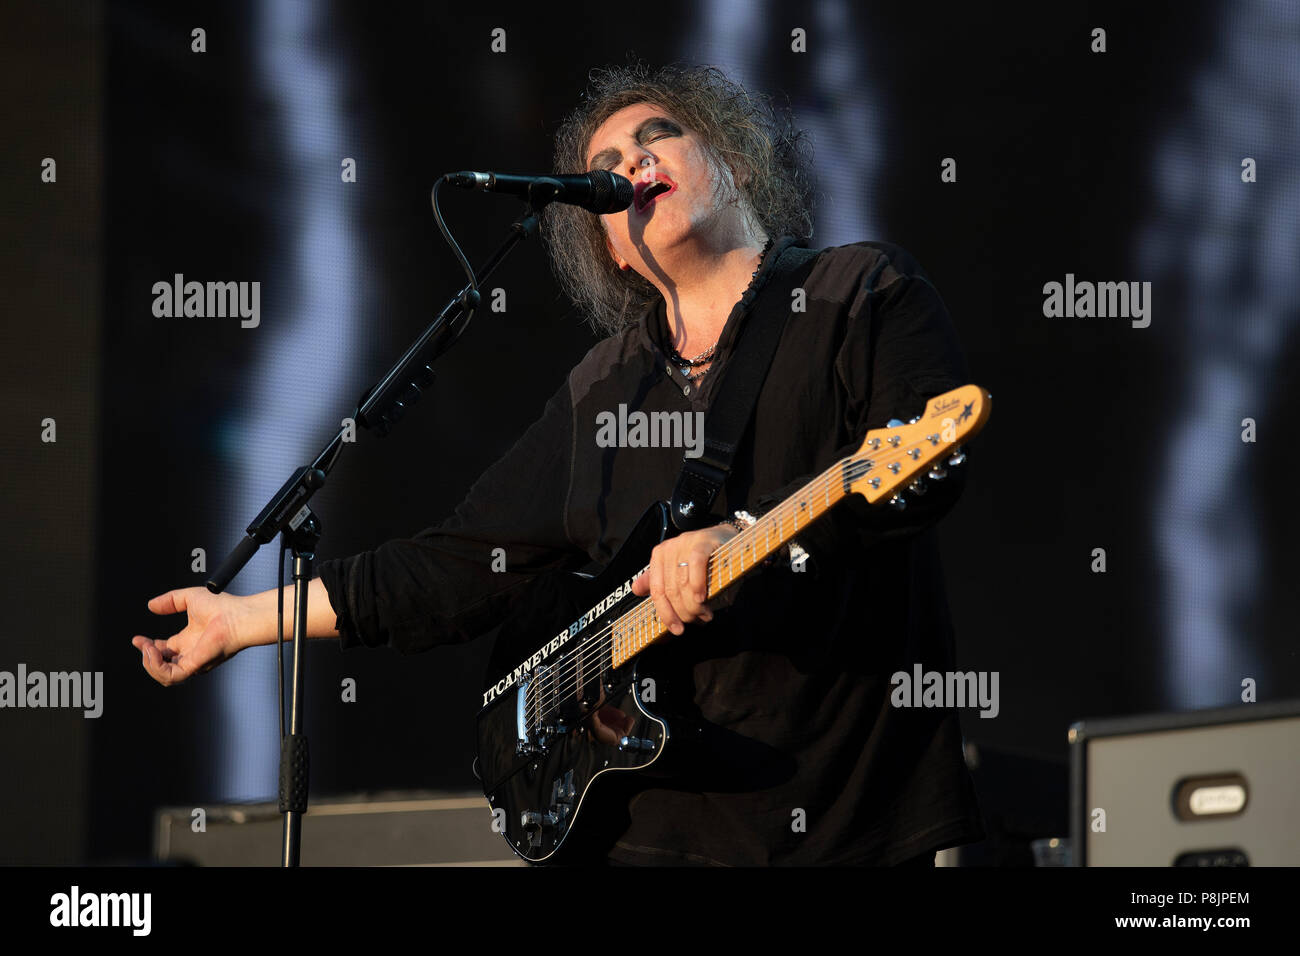 London, UK. 7th July 2018. Robert Smith of The Cure performs on the Great Oak Stage, British Summer Time, Hyde Park. Stock Photo